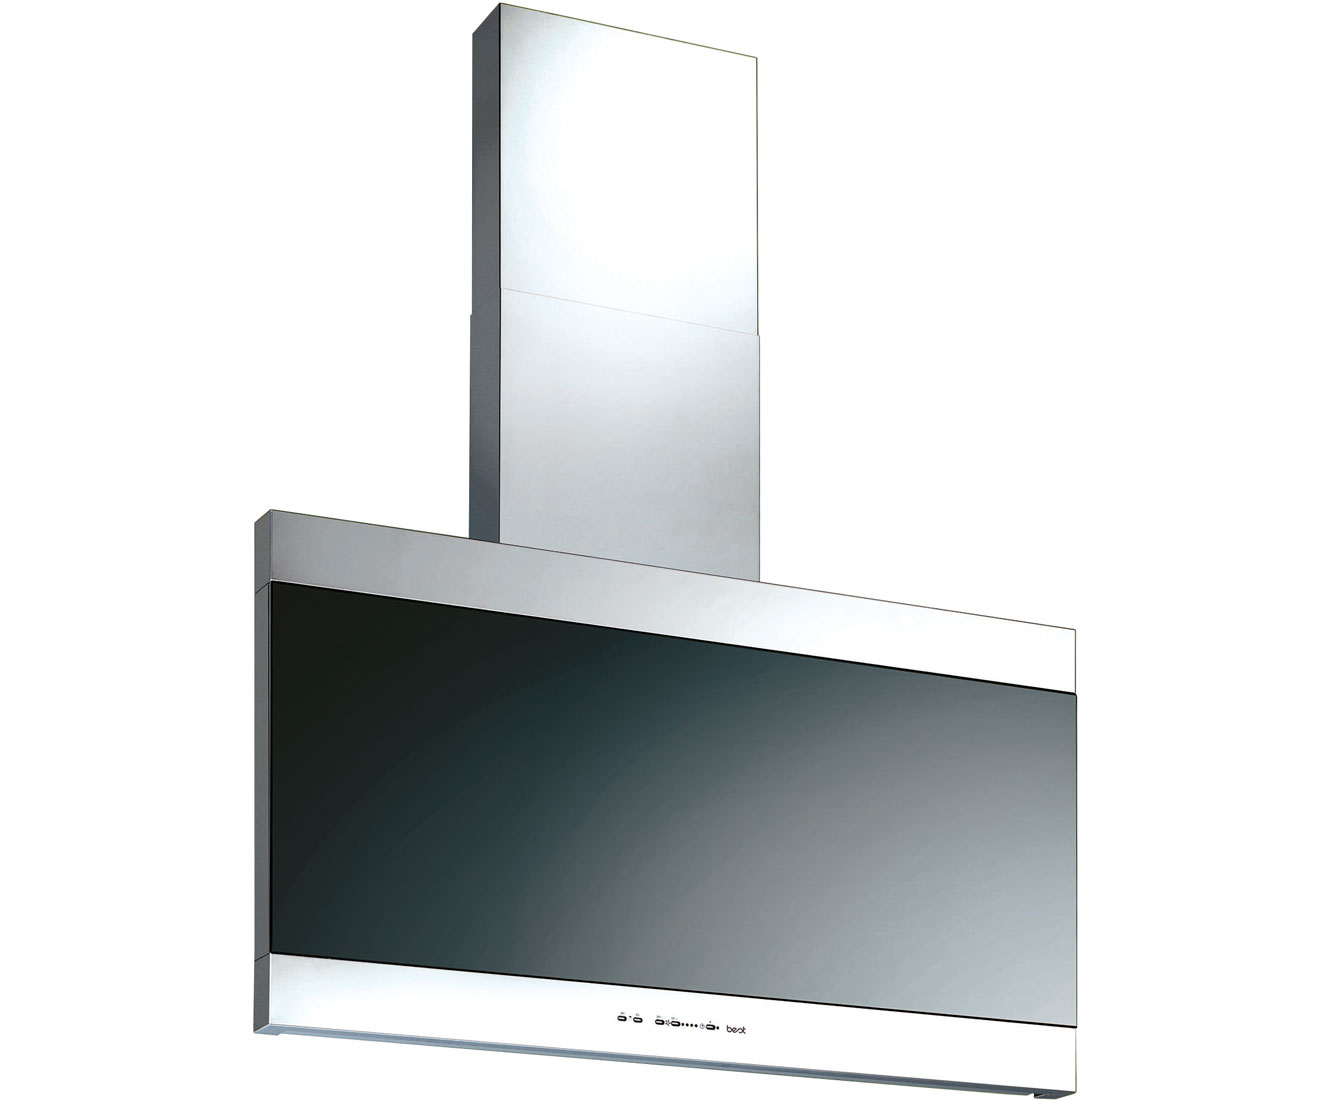 BEST Latina HOODBELA90SS Integrated Cooker Hood in Stainless Steel